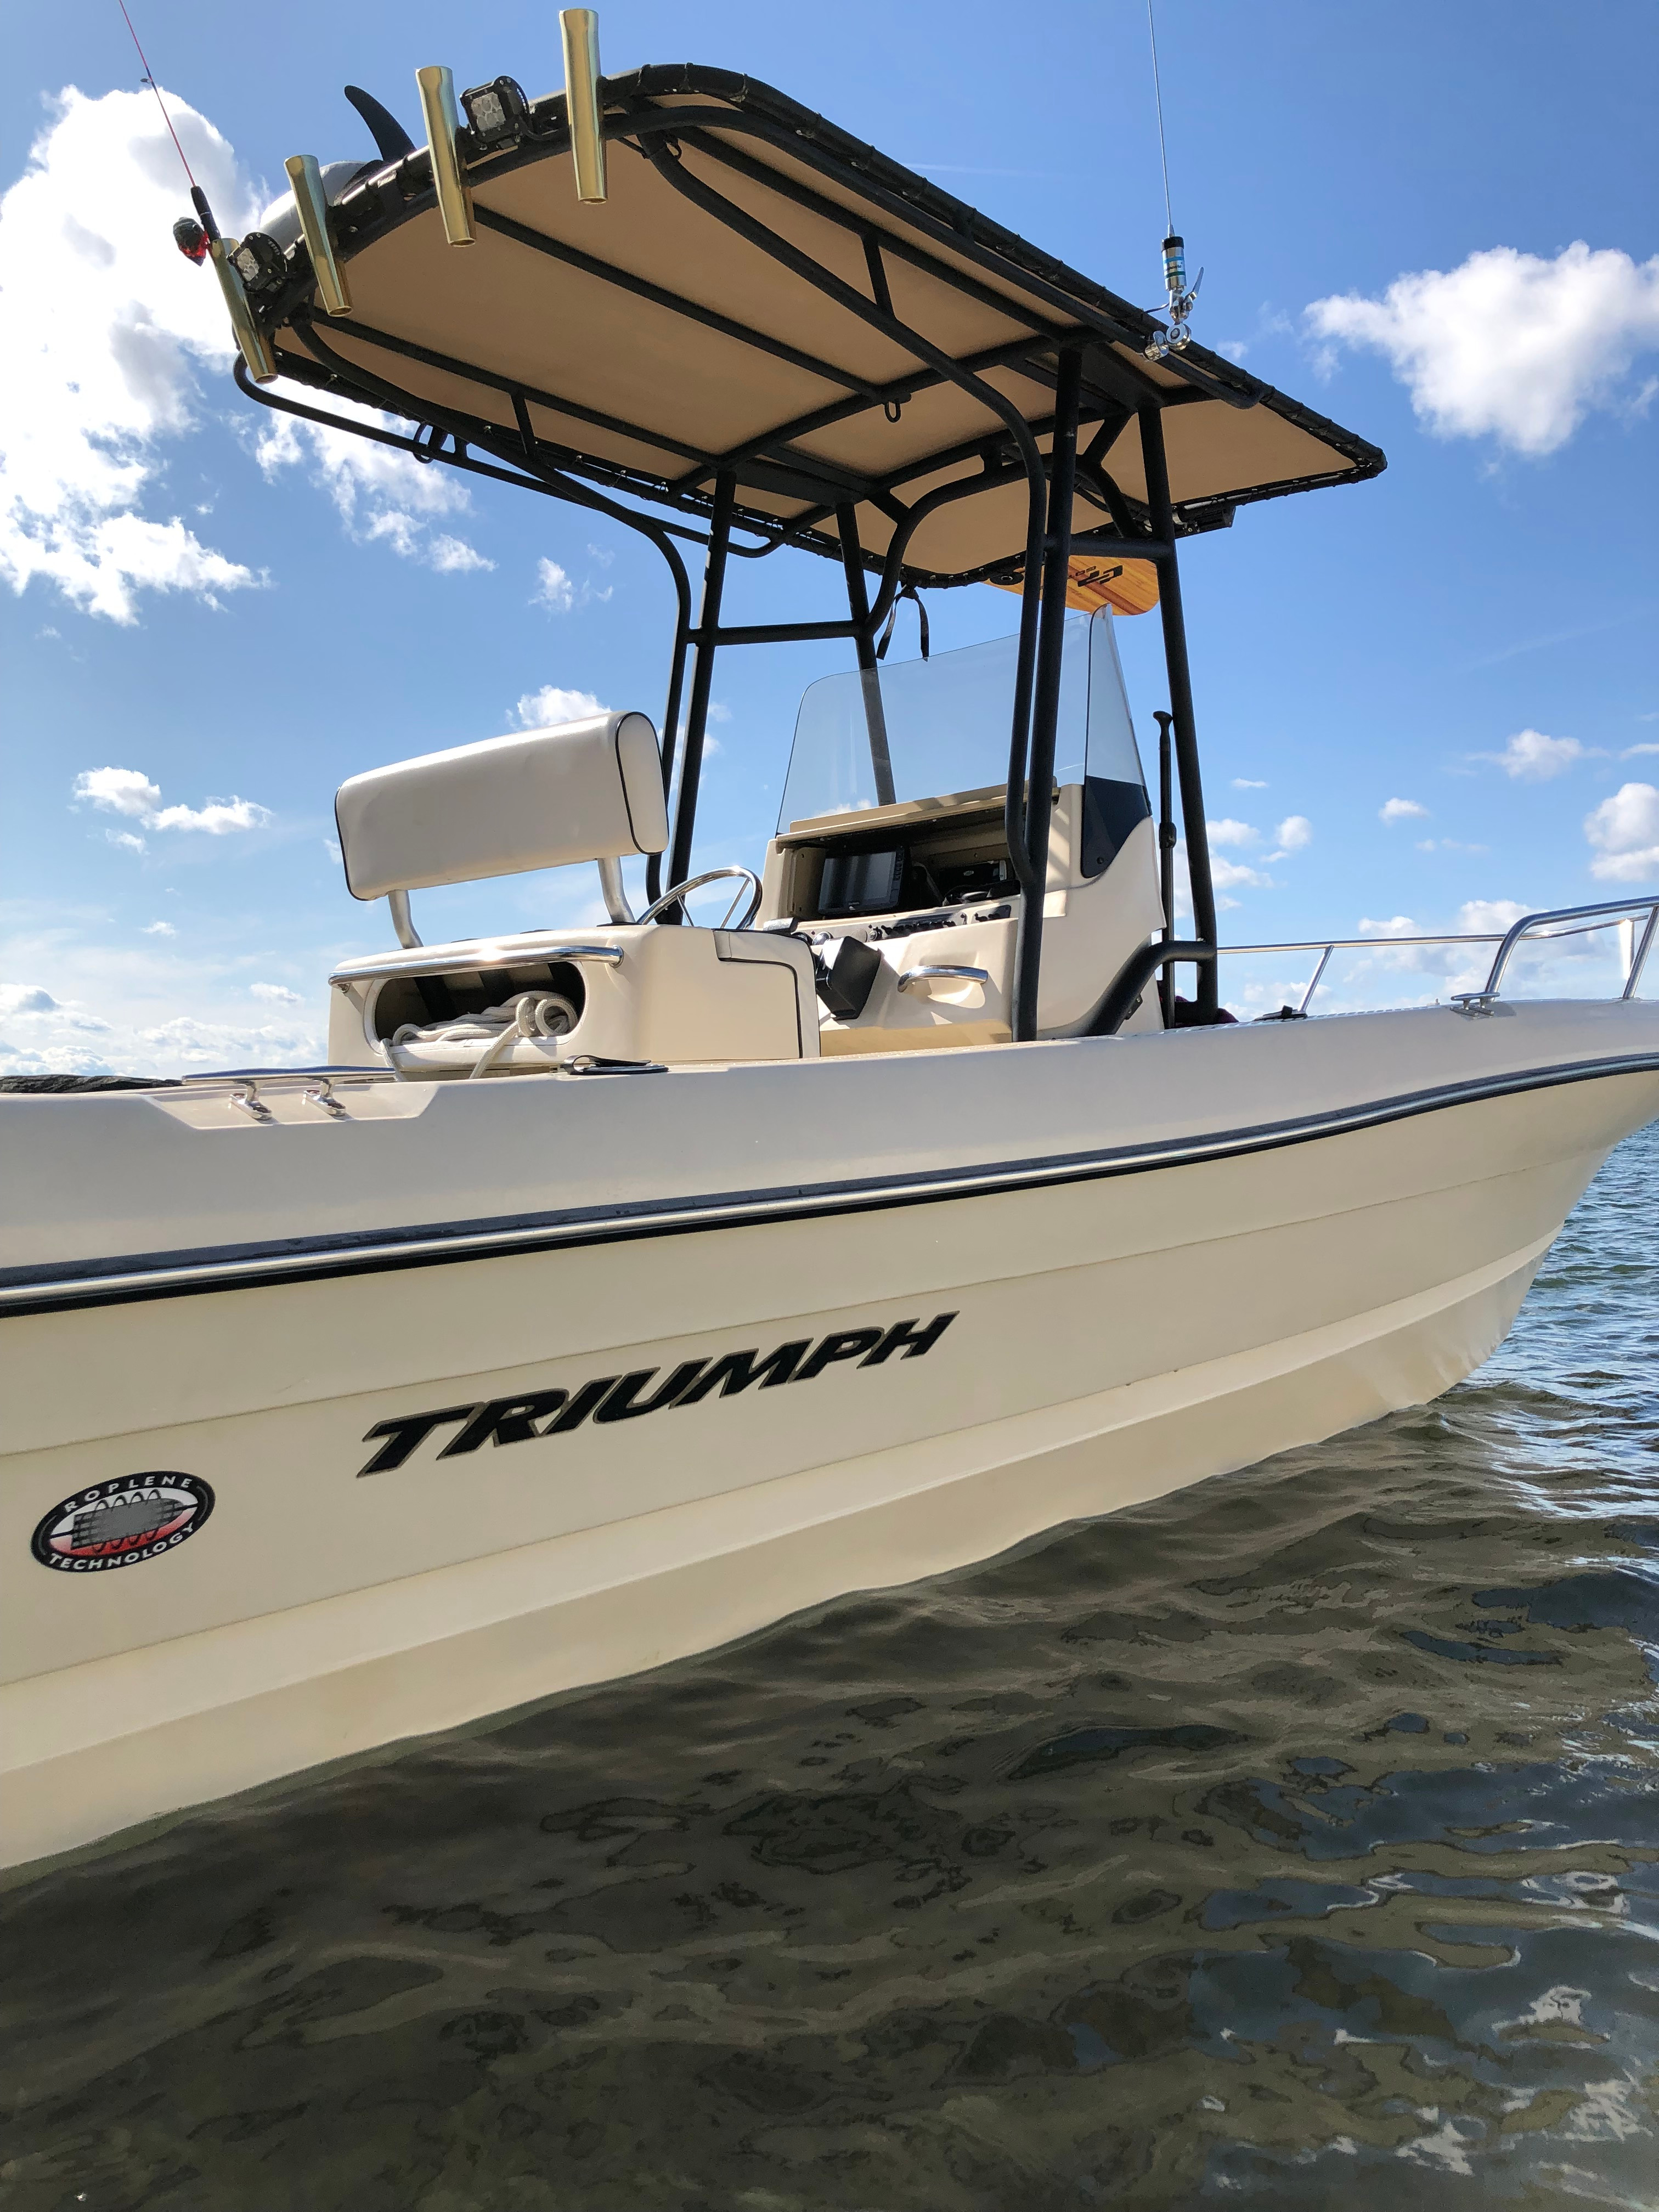 Triumph boats for sale - Boat Trader